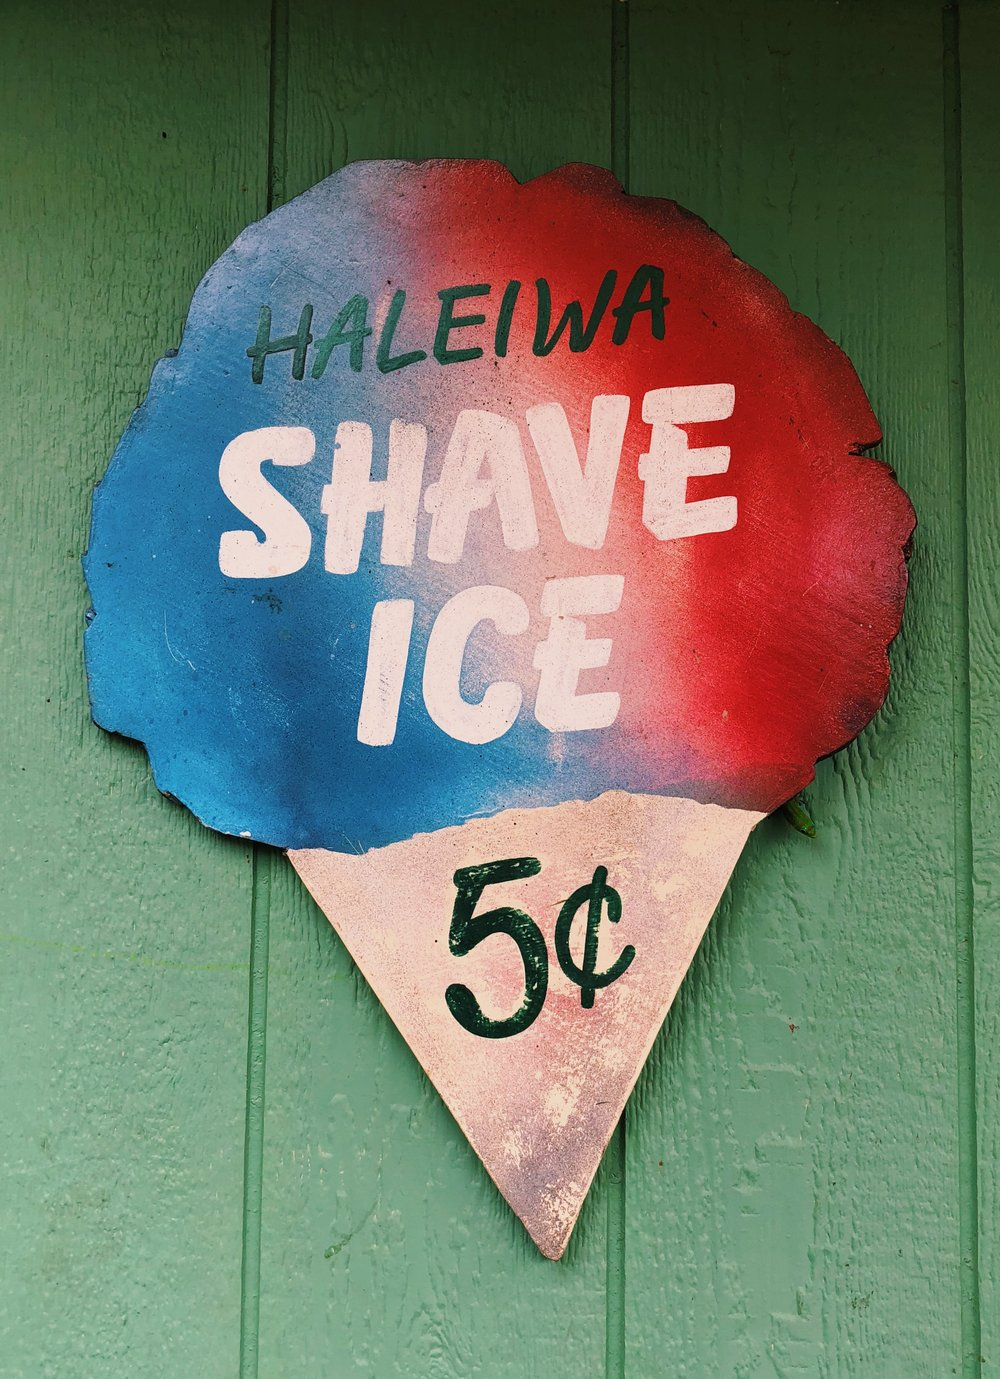 shave ice sign.JPG